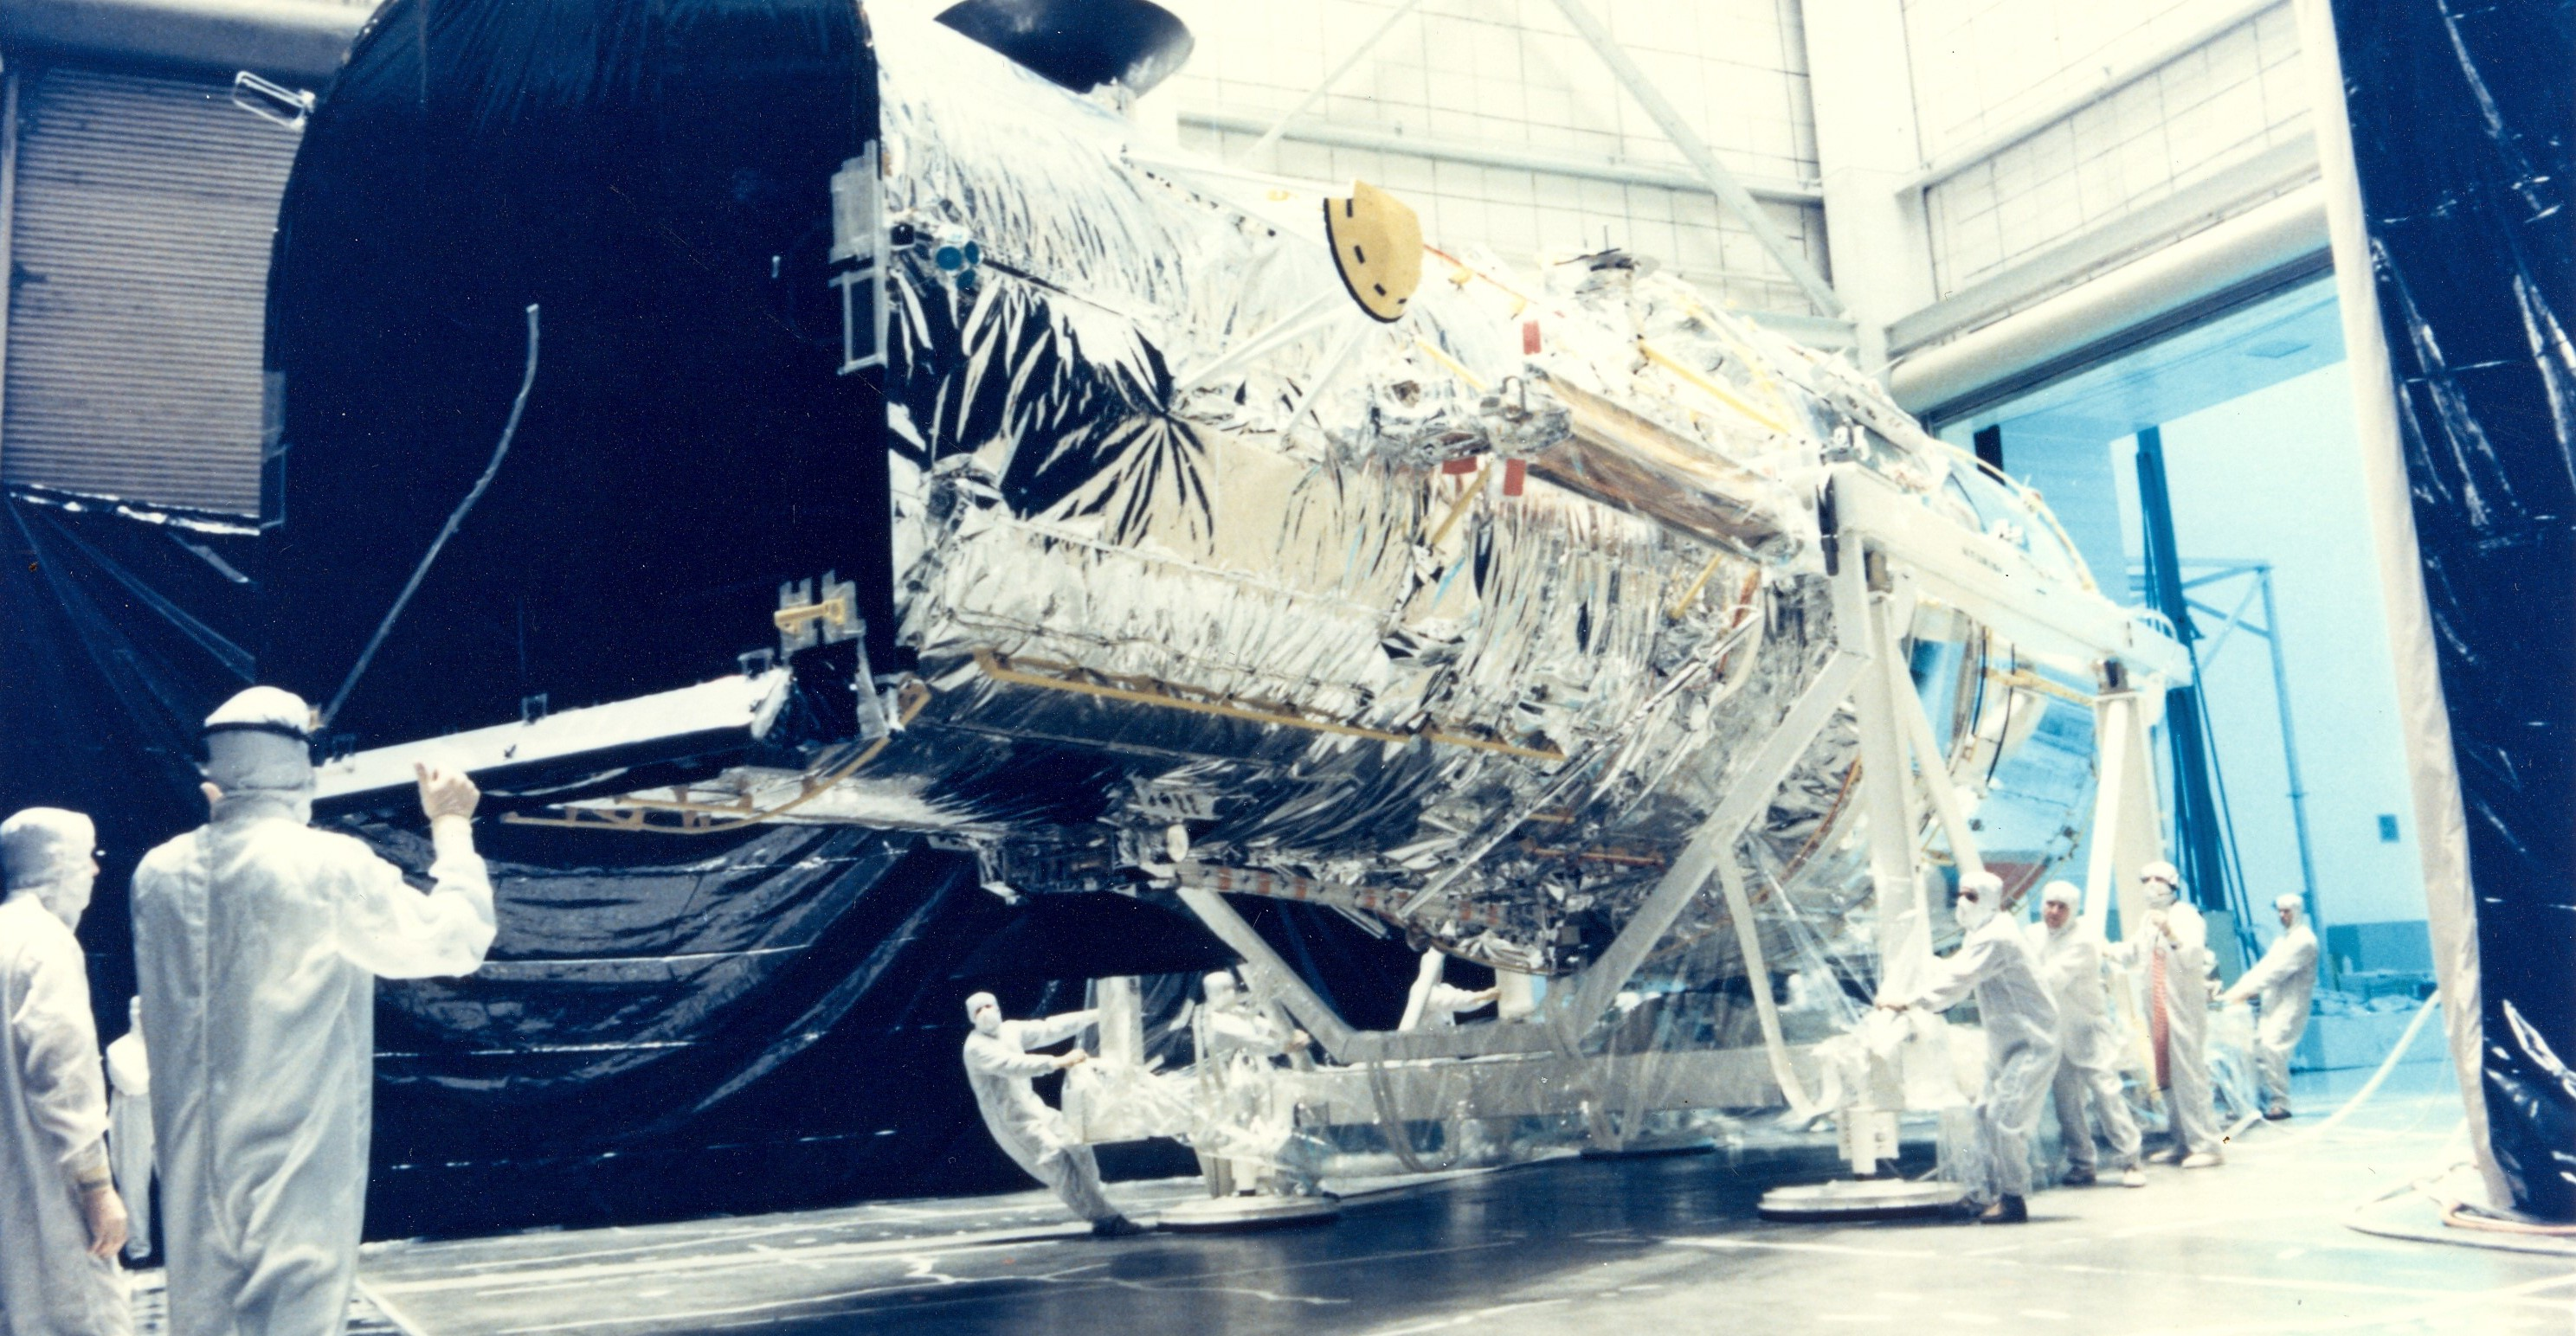 Preparing Hubble for Operations in Space